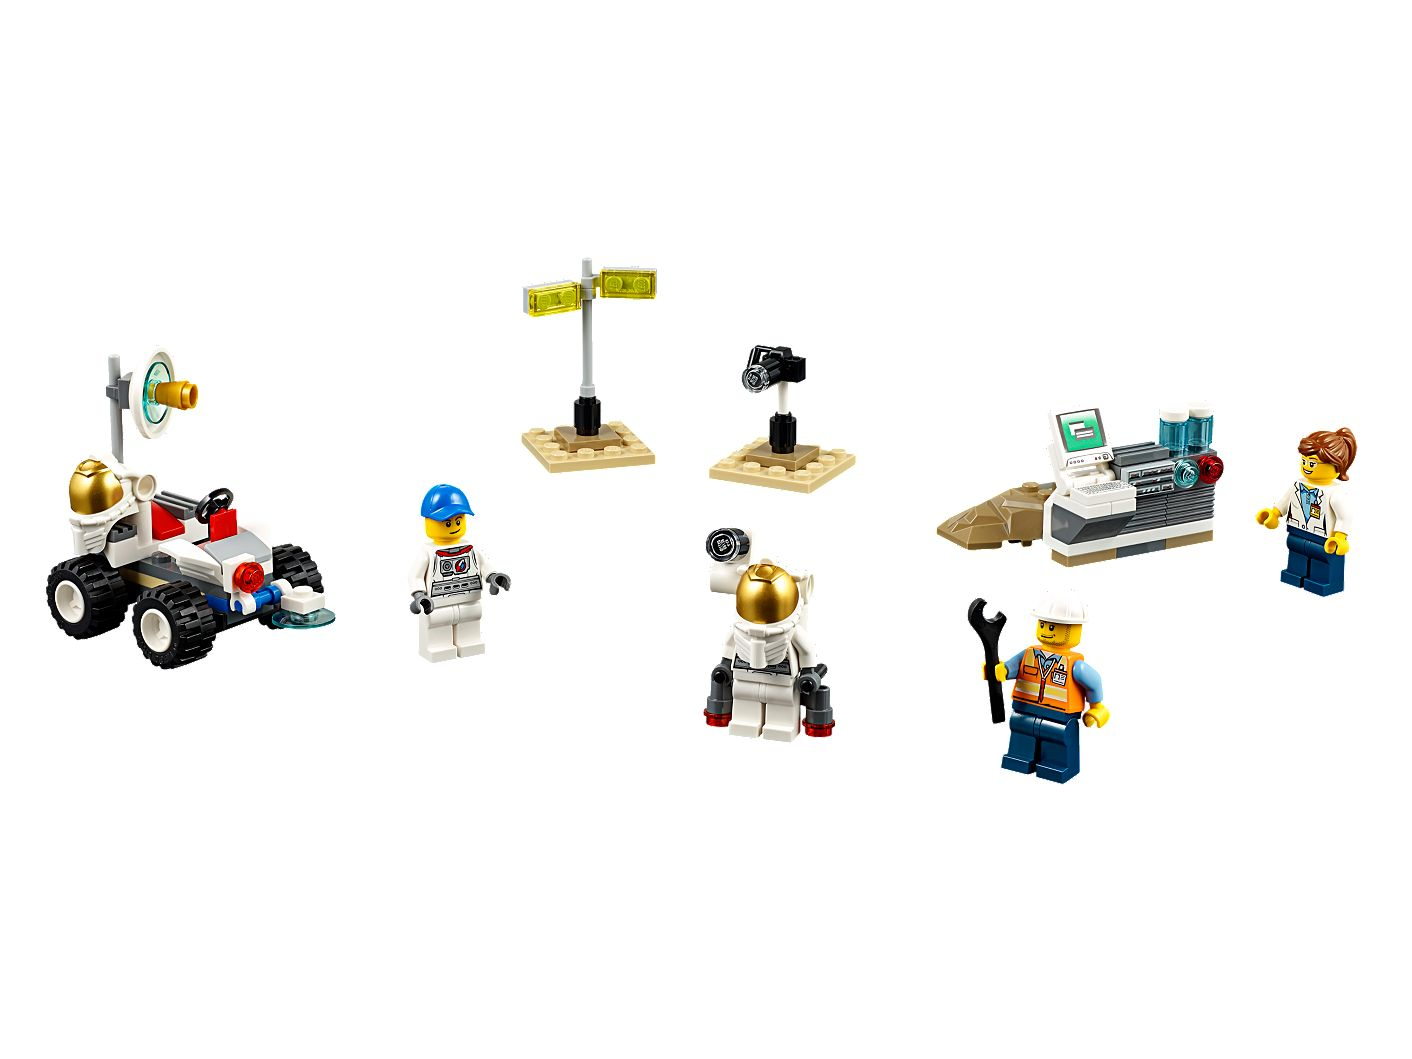 Space Starter Set 60077 | City | Buy online at the Official LEGO® Shop US